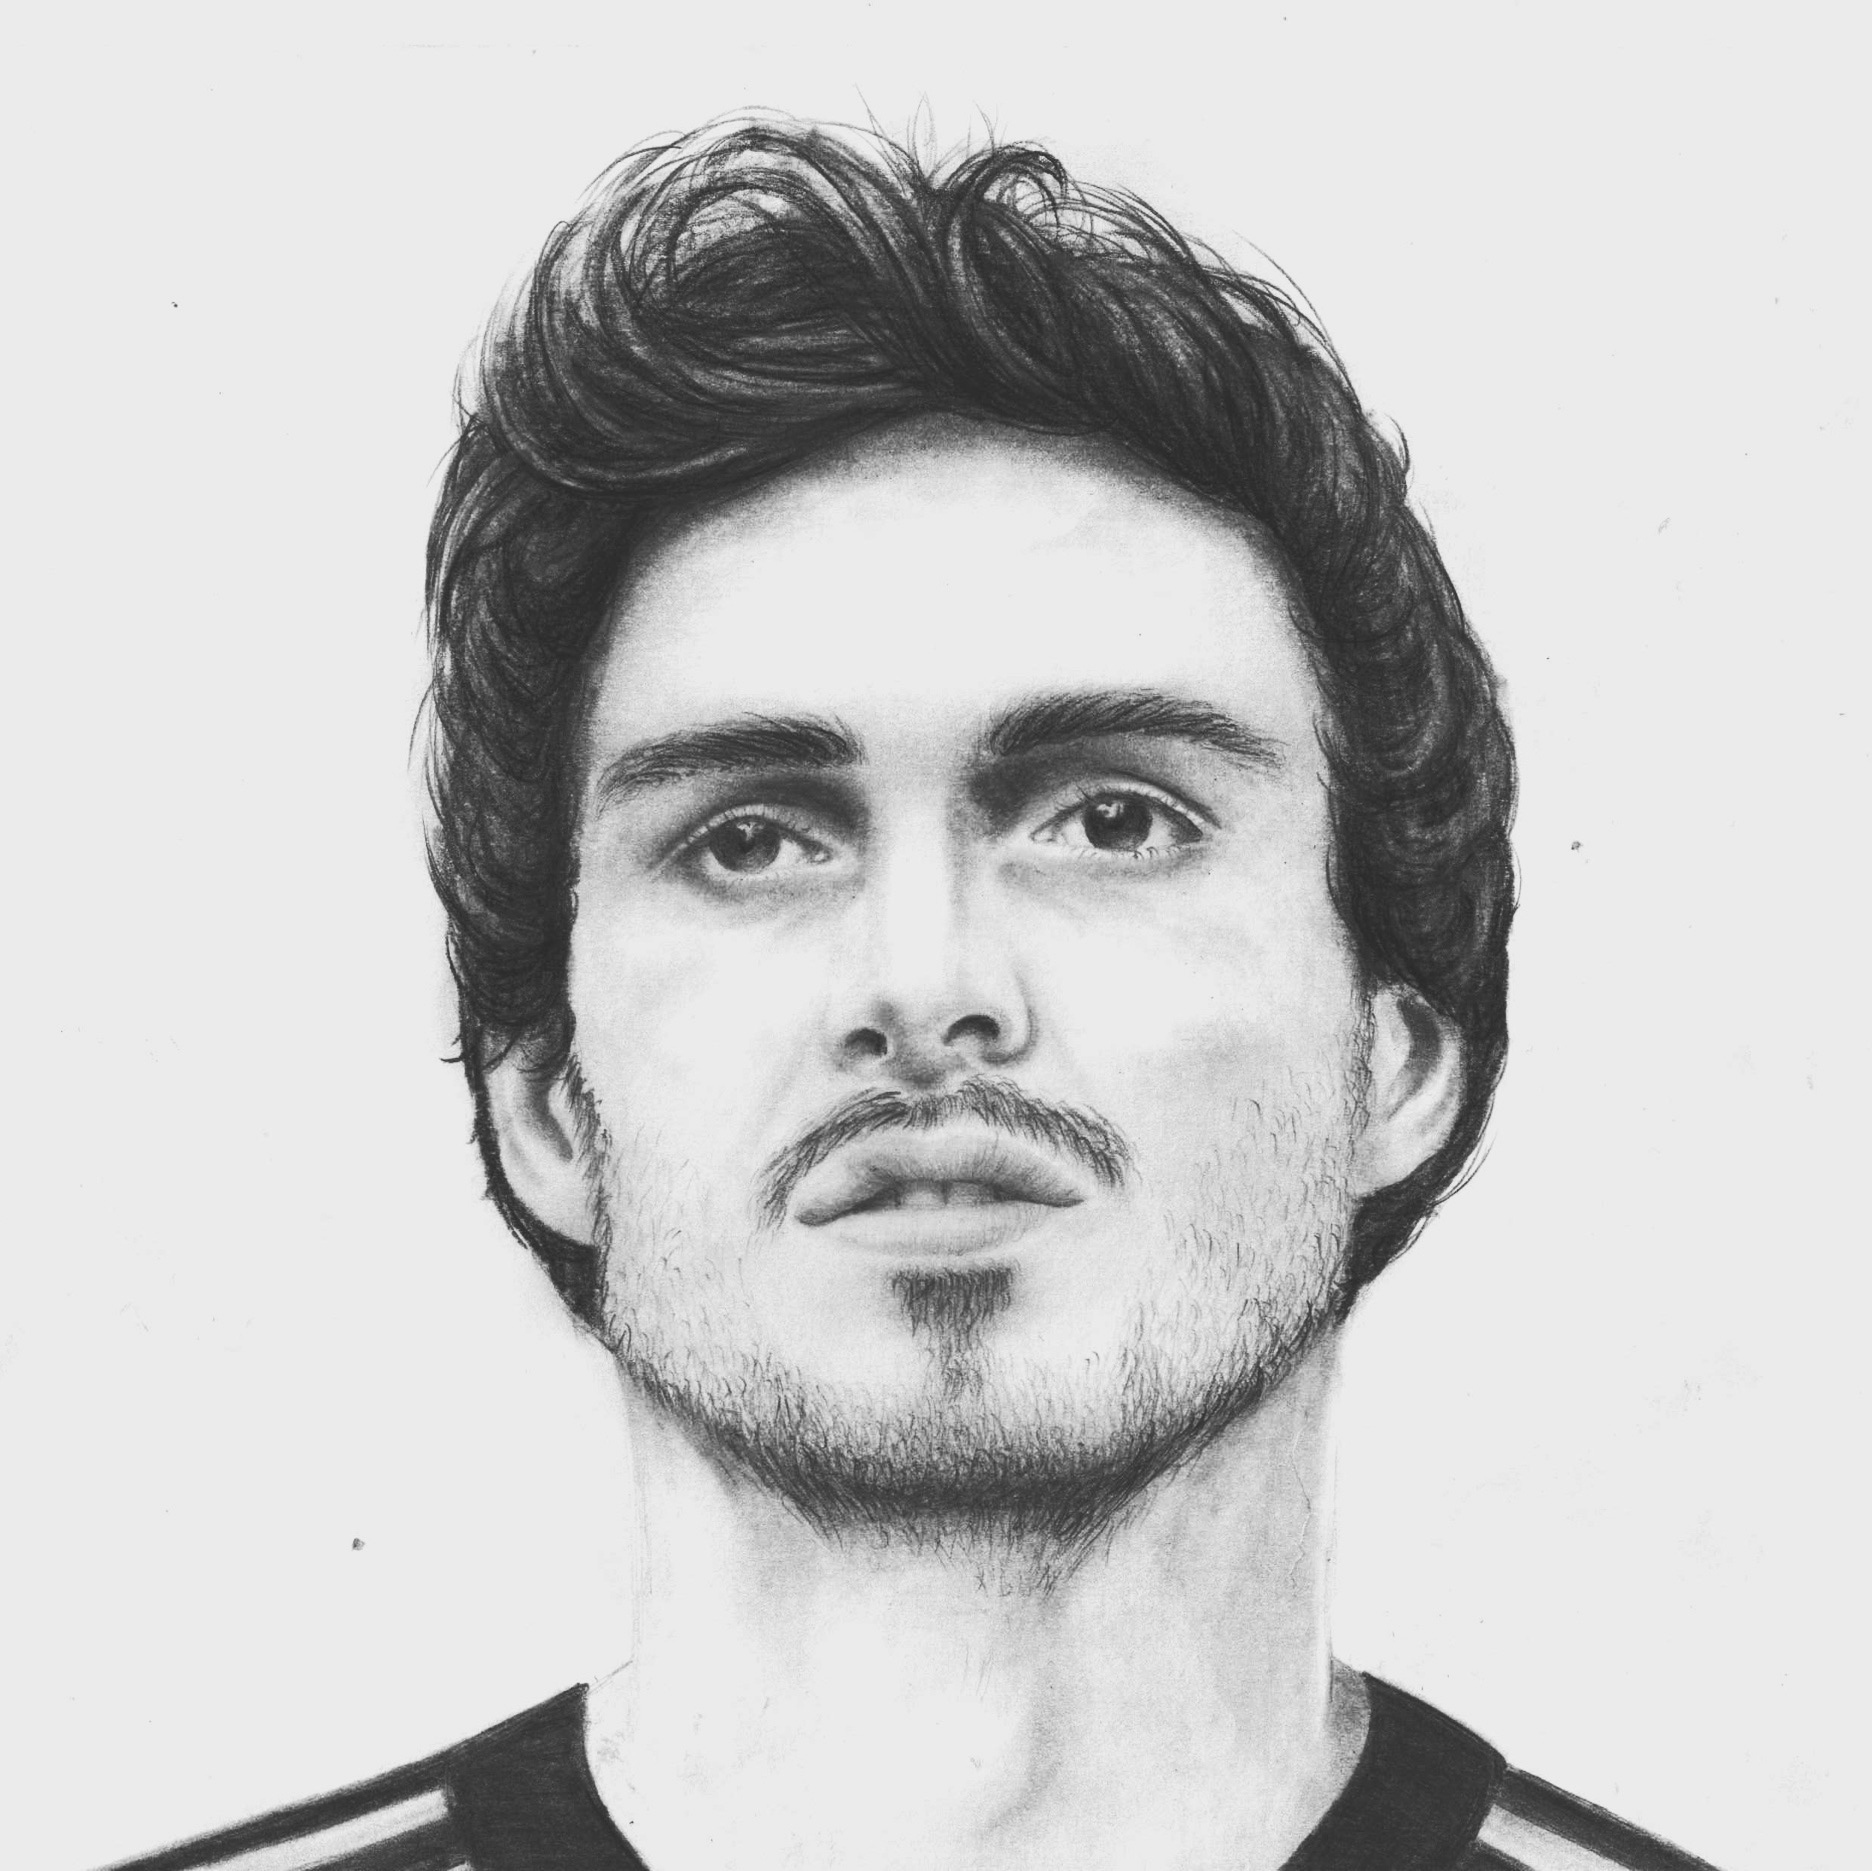 Mats Hummels Drawing by carolin eli on DeviantArt